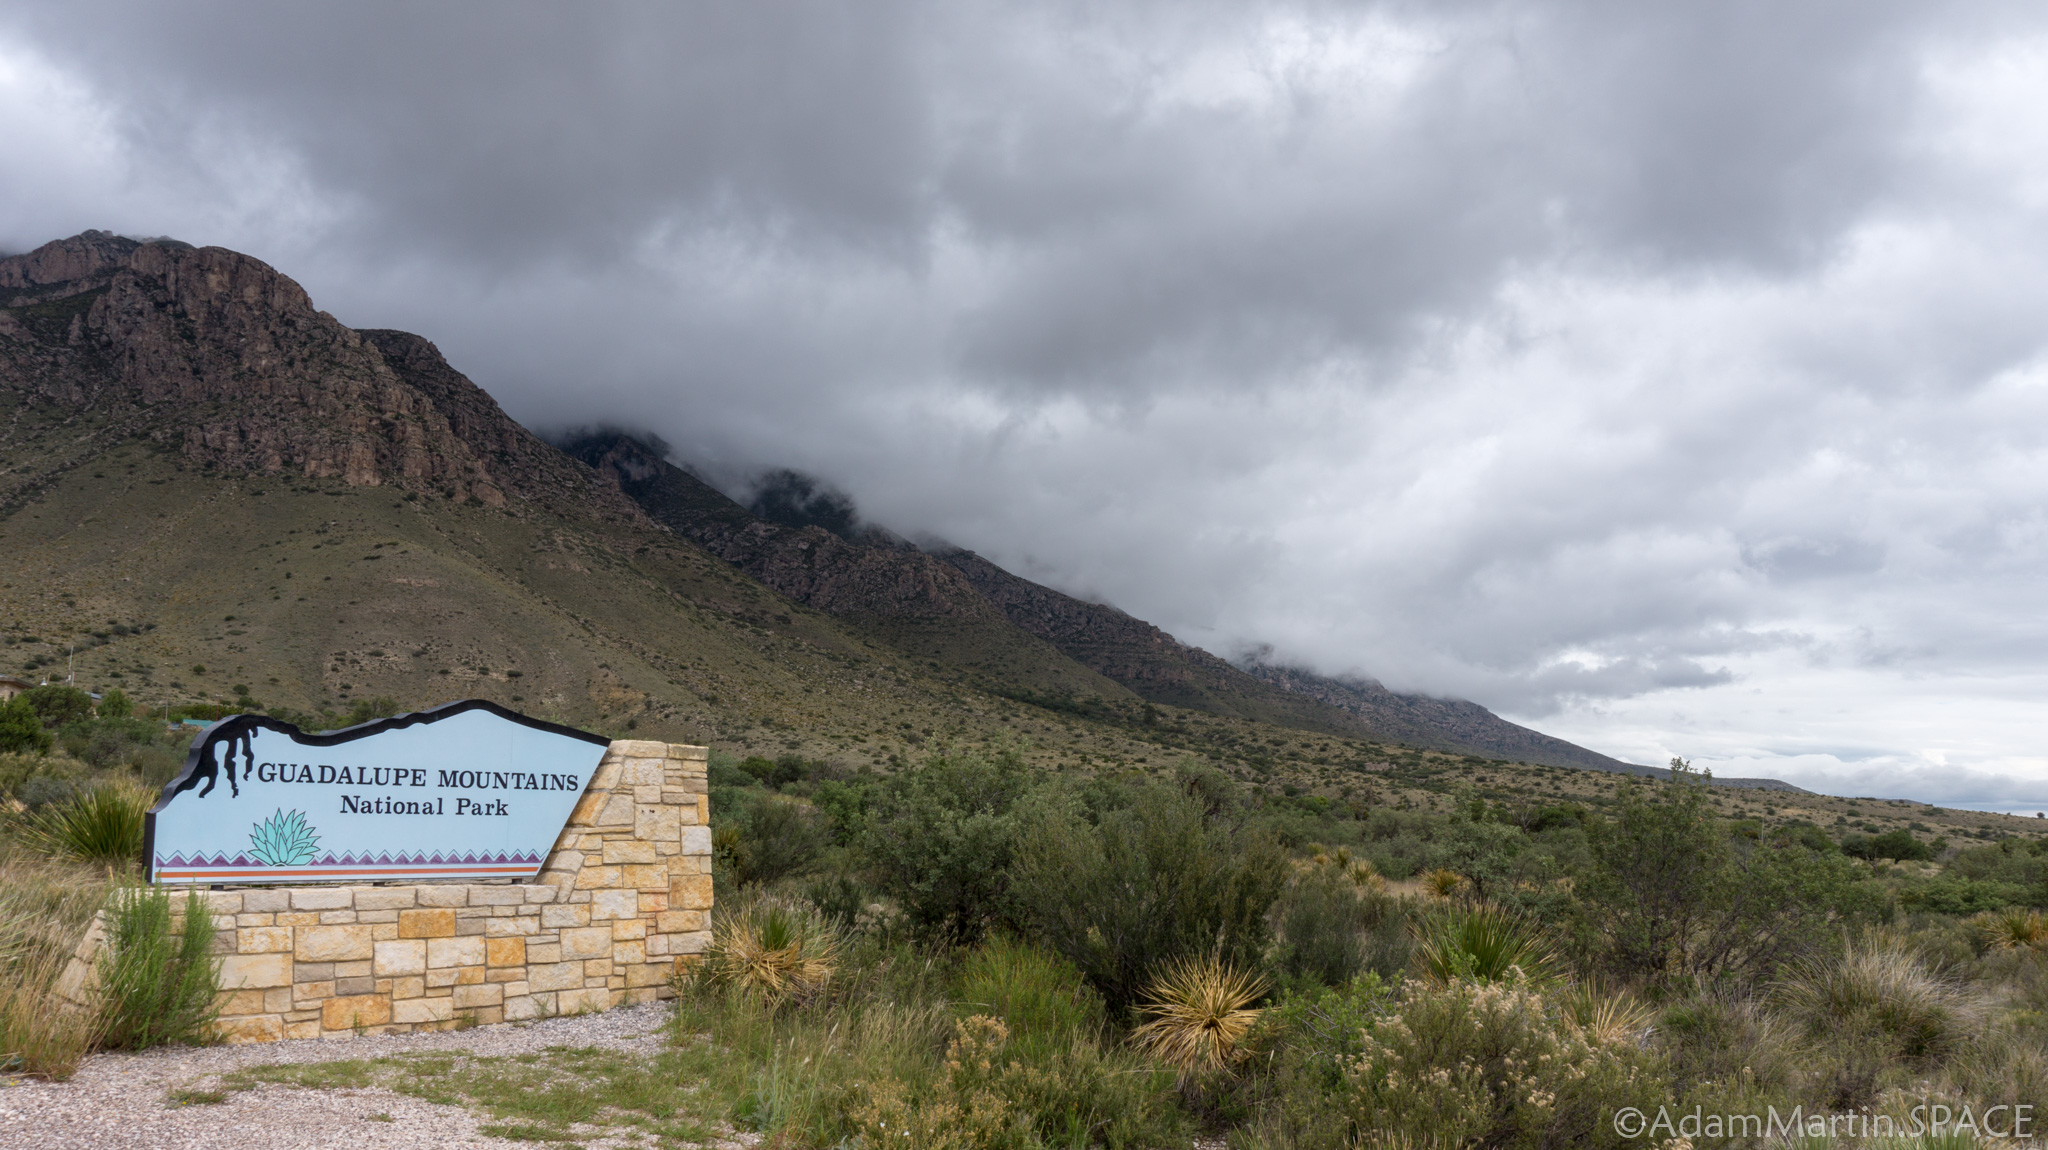 Guadalupe Mountains National Park - Covered in Clouds